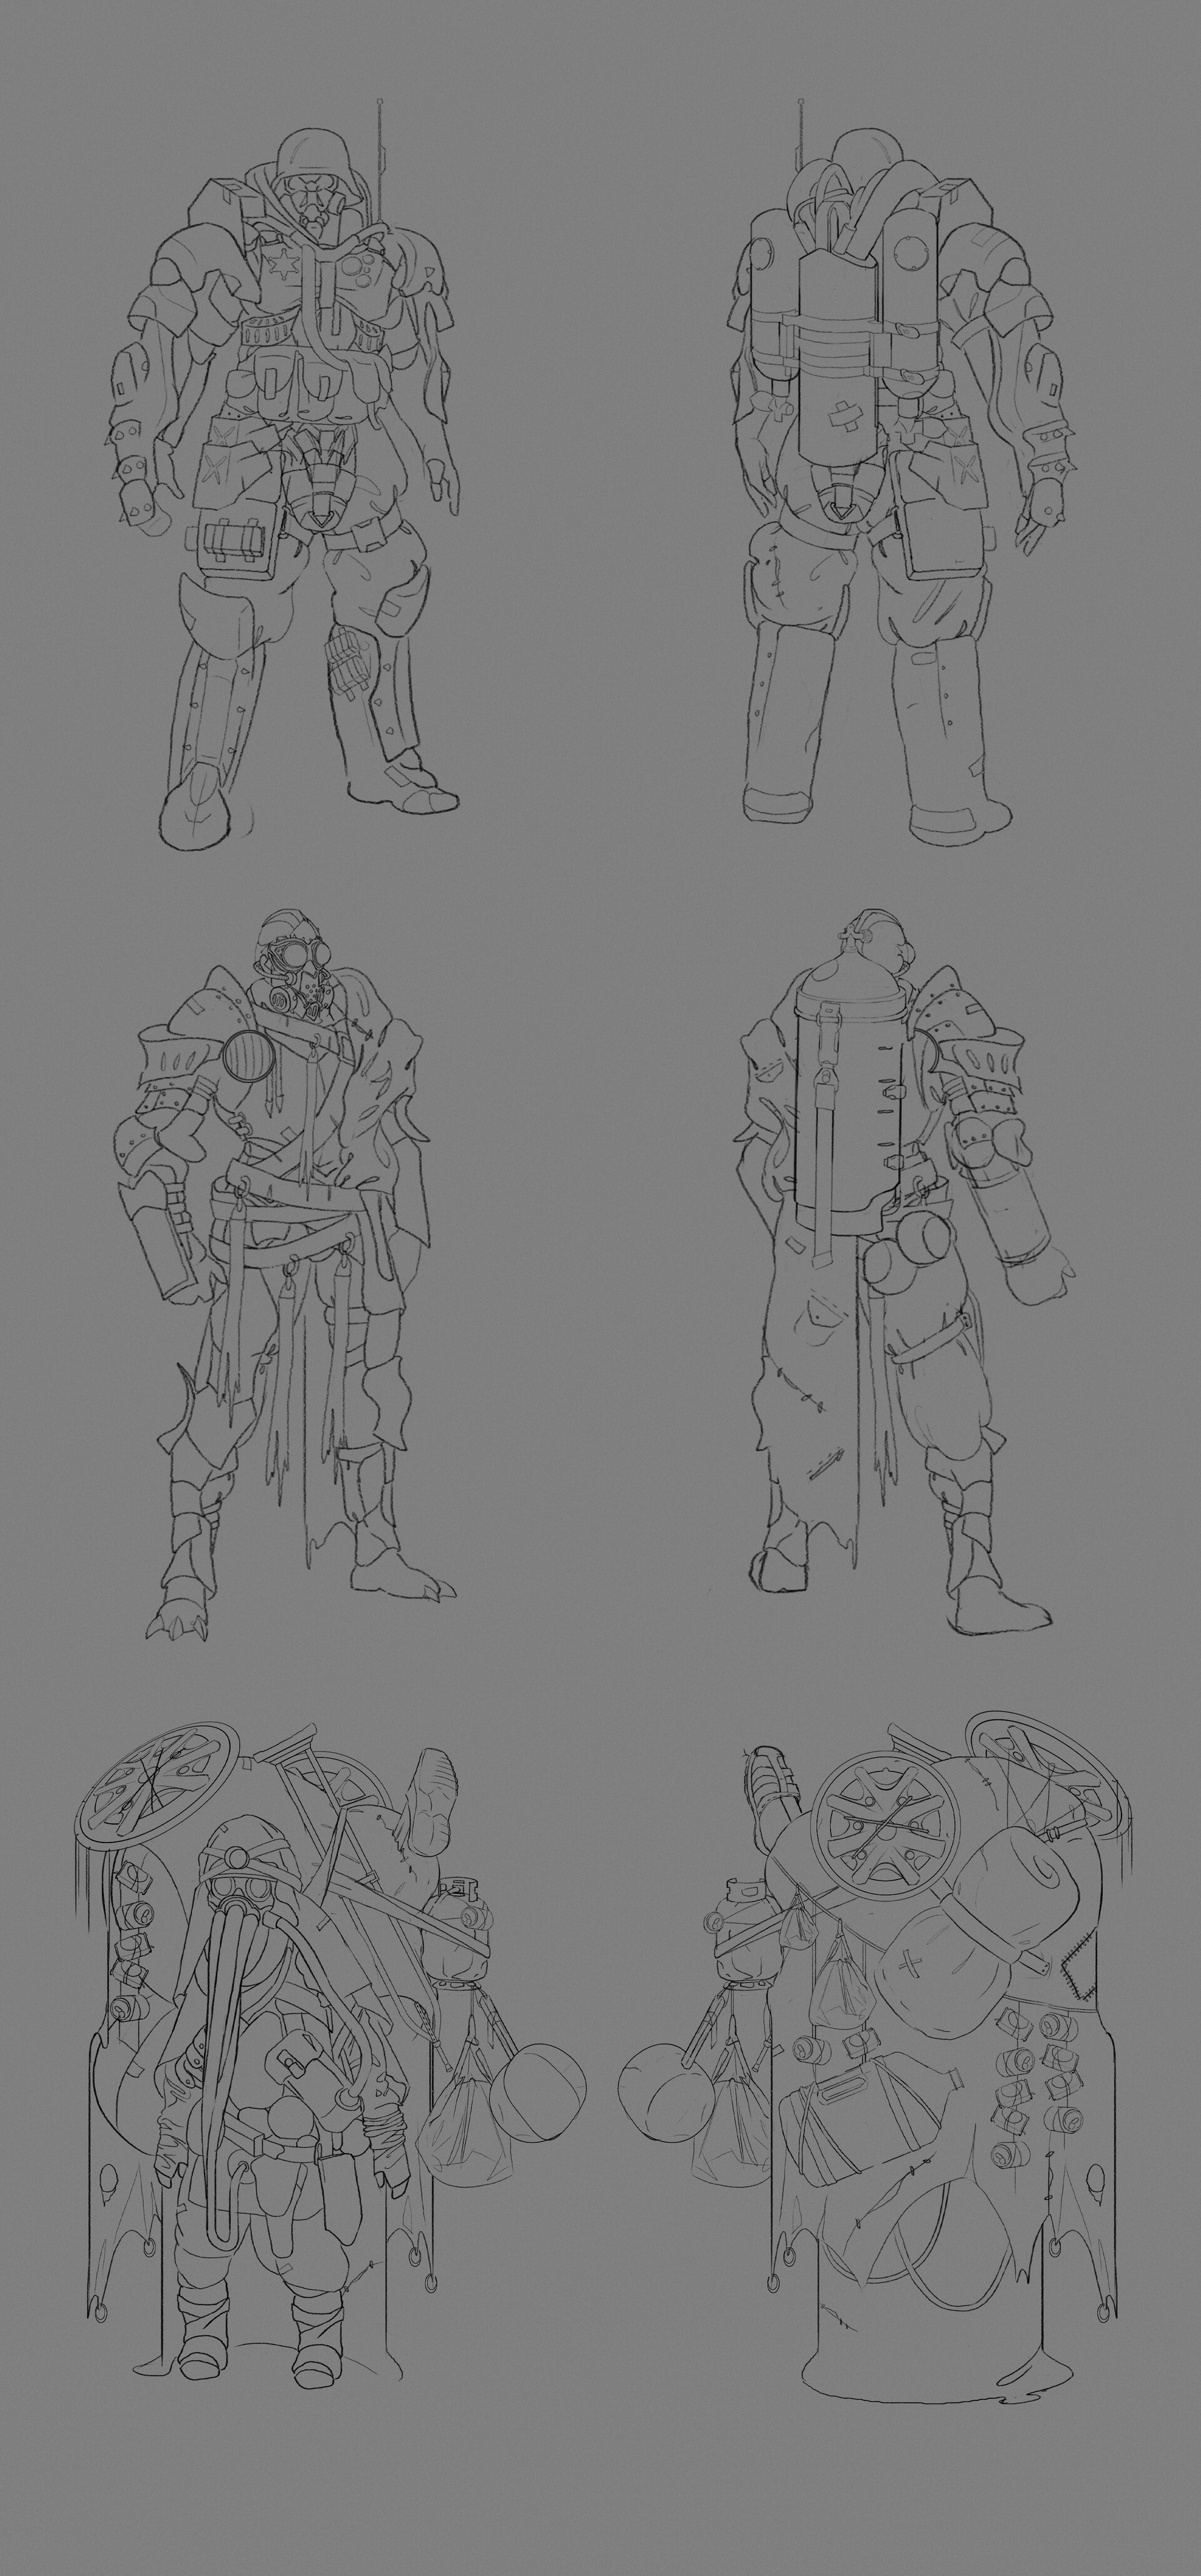 James starr king starr king post apoc armor sketches